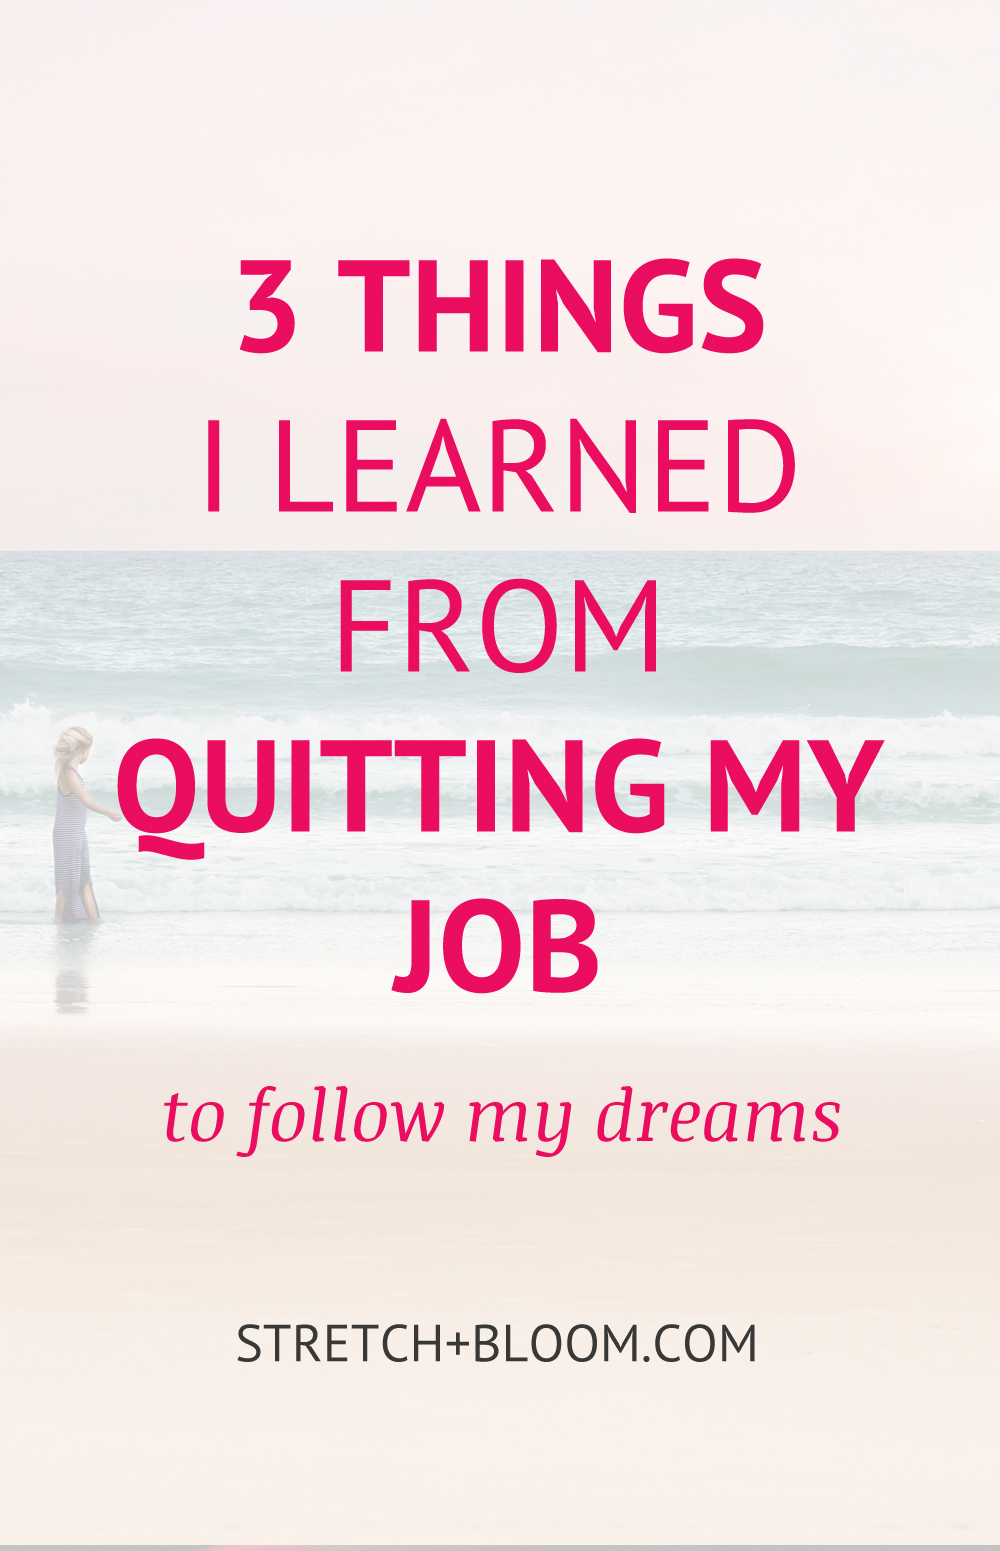 3 things I learned from quitting my job